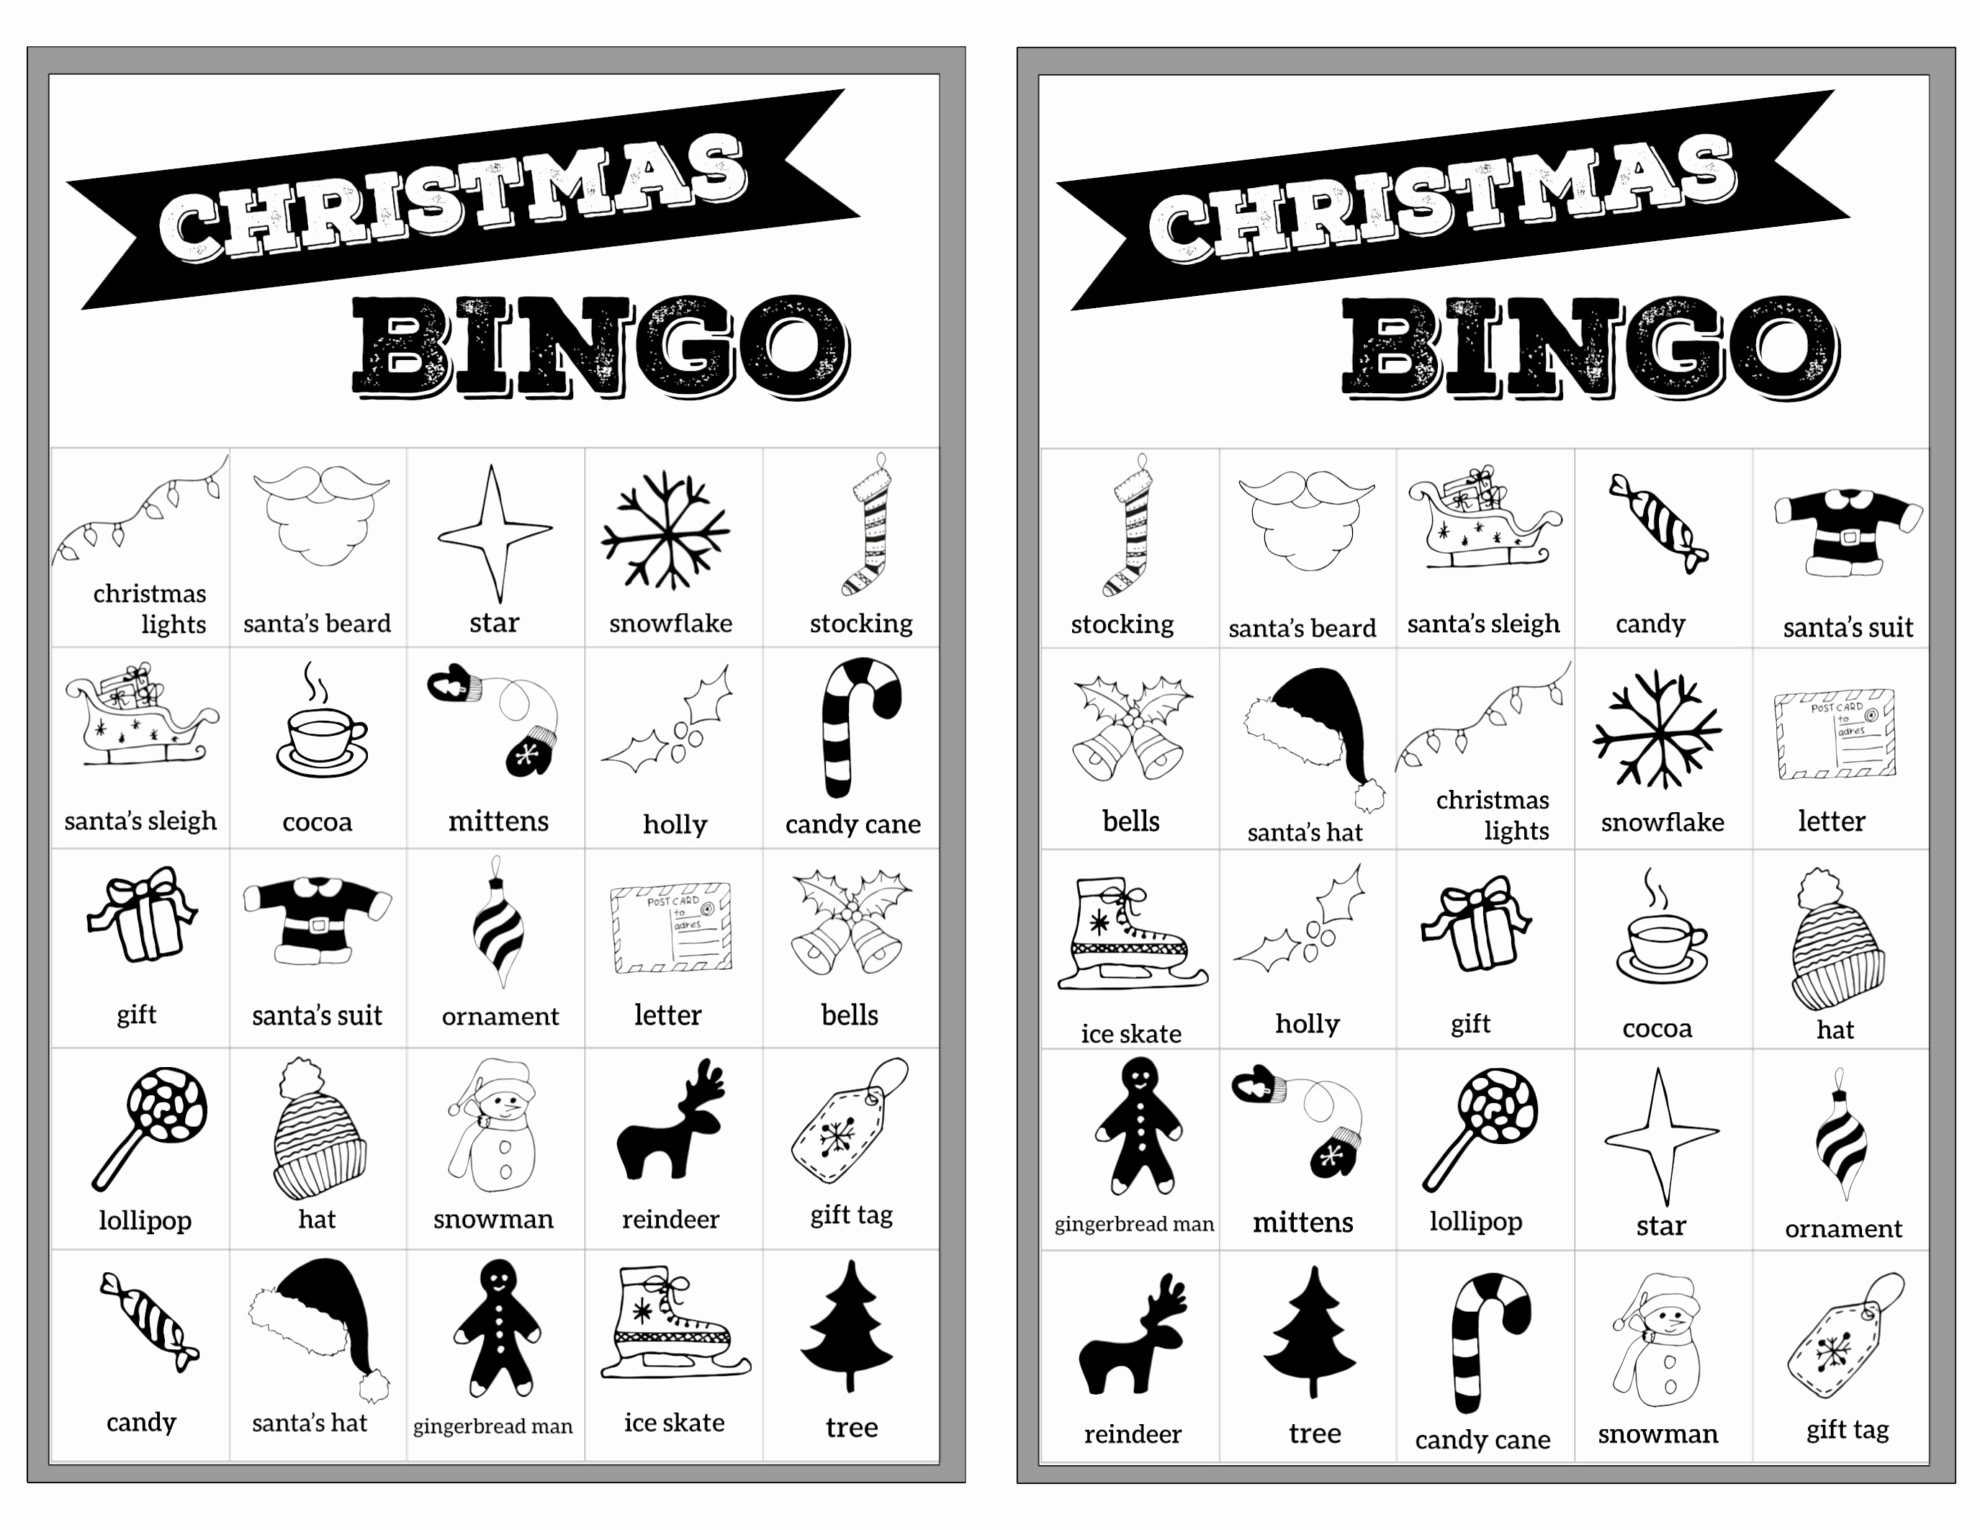 Free Printable Bingo Boards Best Of Free Christmas Bingo Printable Cards Paper Trail Design